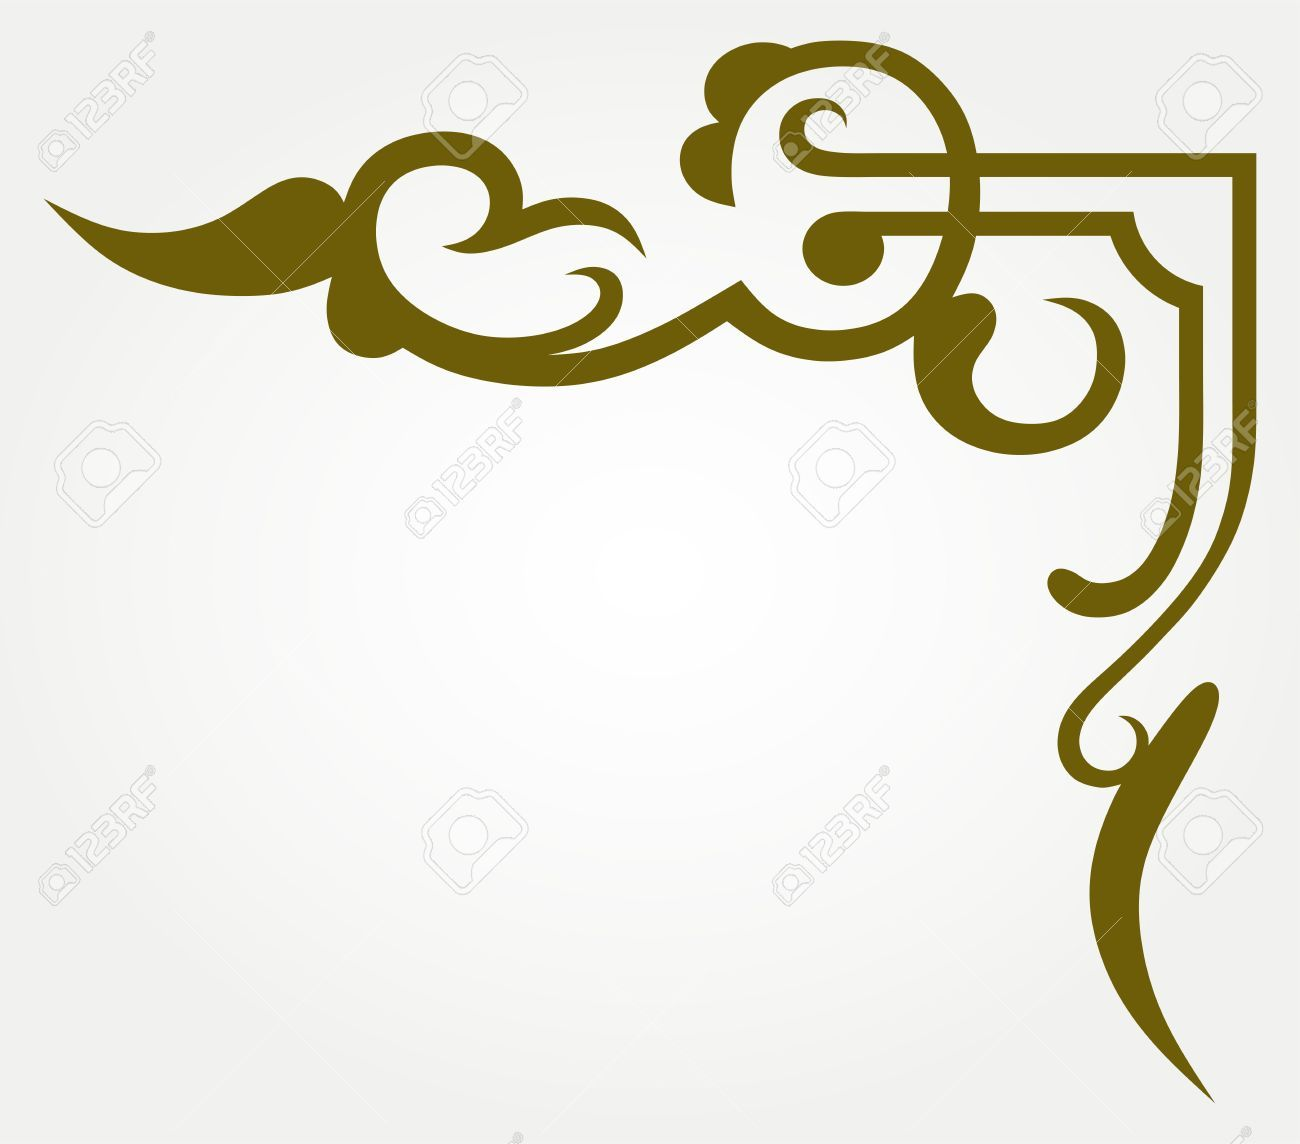 15843208 Calligraphic Design Element And Page Decoration Stock